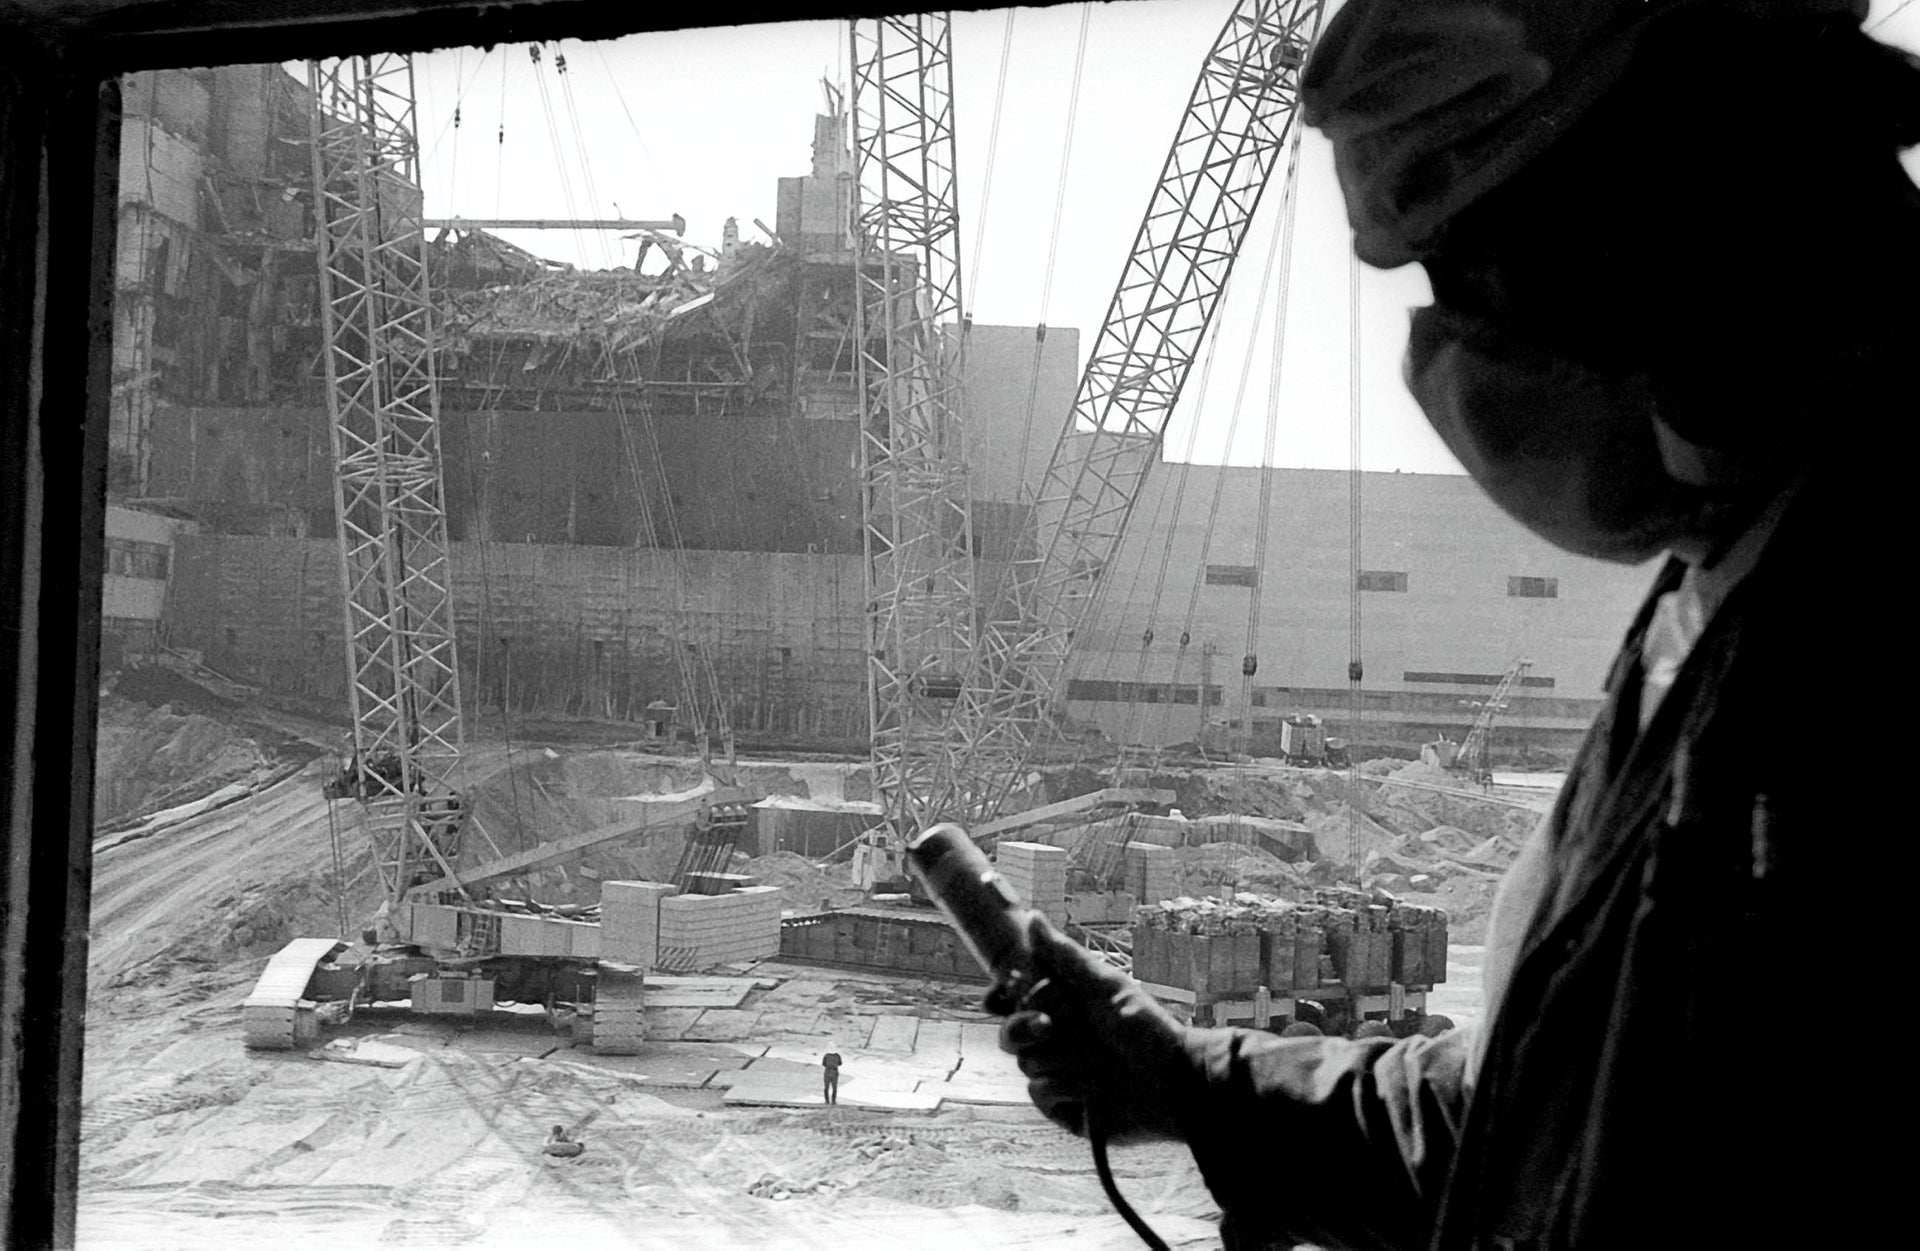 In this 1986 photo, a Chernobyl nuclear power plant worker holdד a dosimeter to measure radiation level.